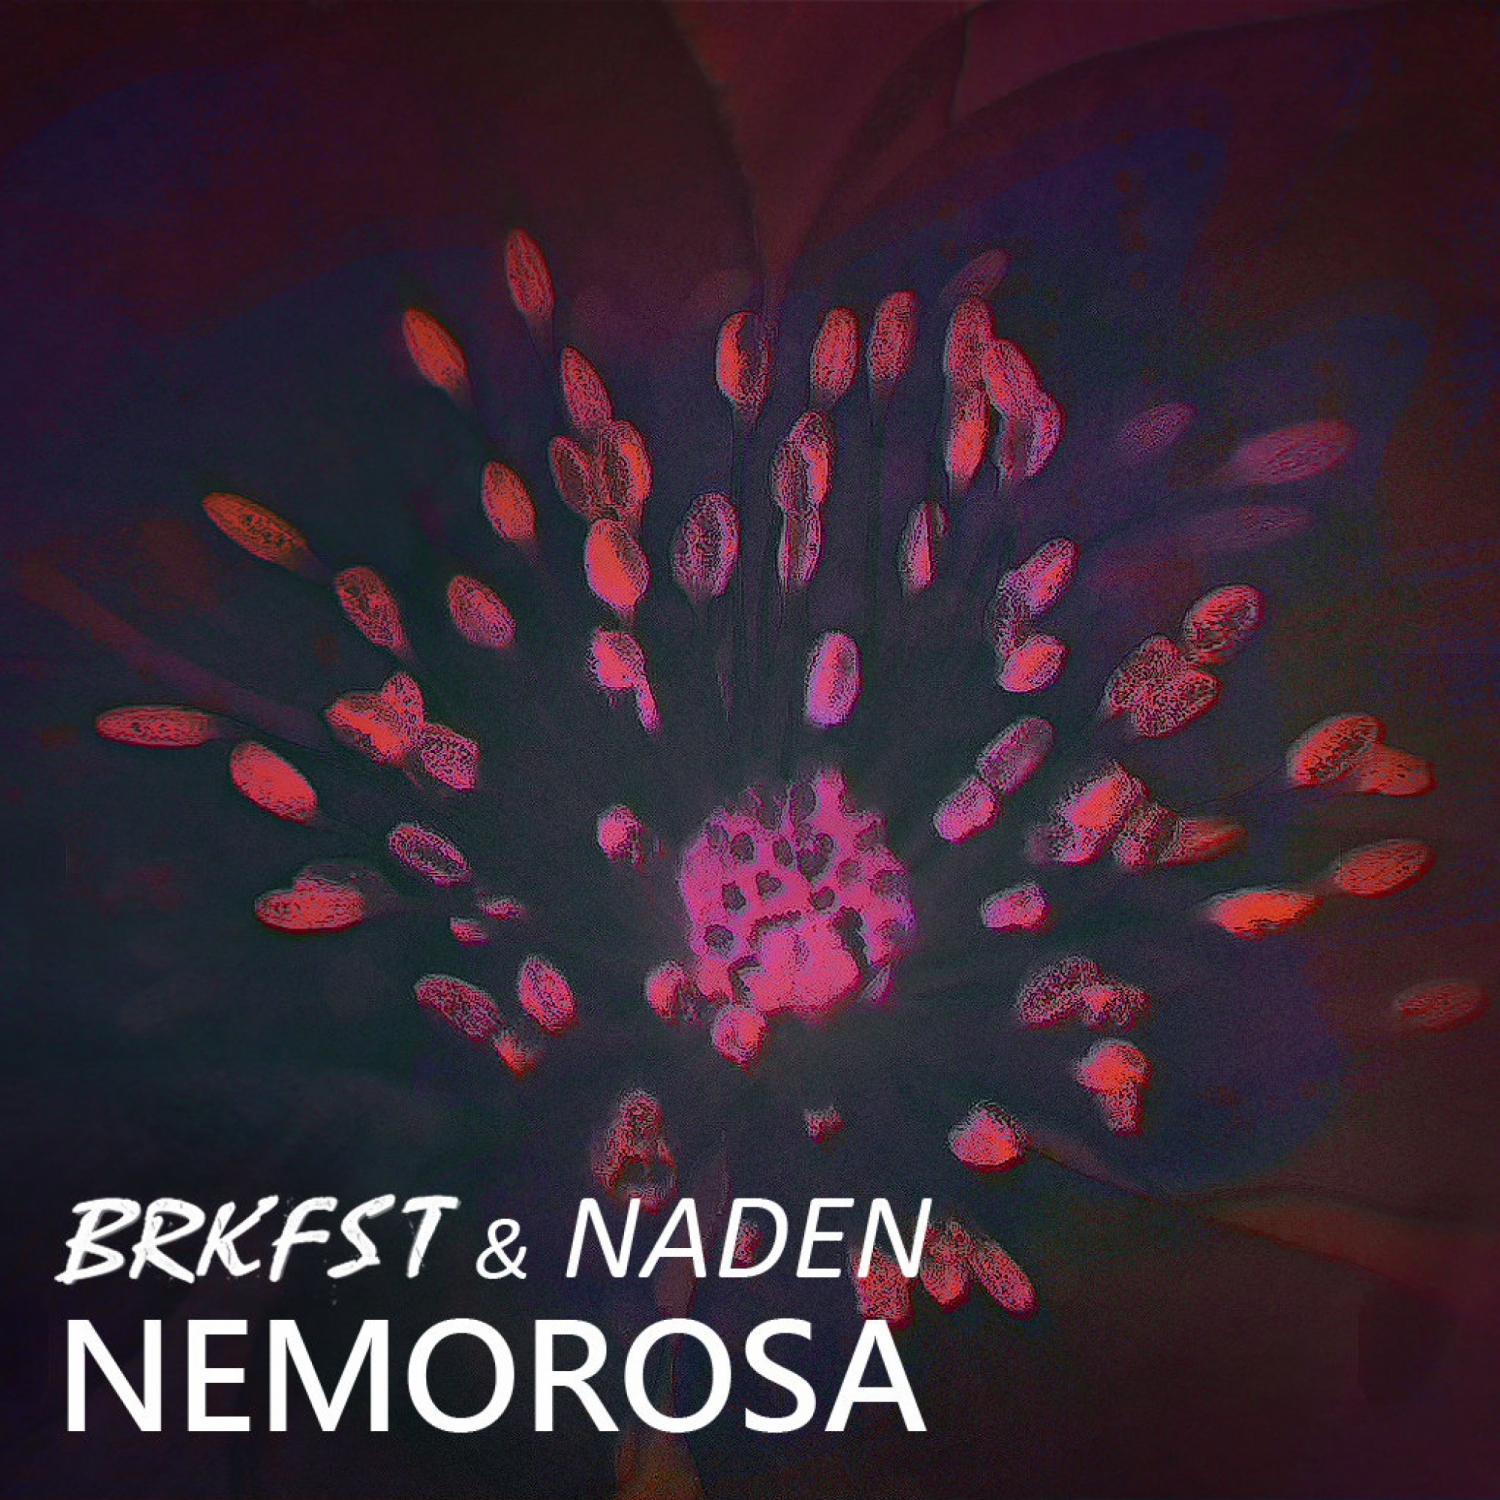 Breakfast & BRKFST & Naden - Nemorosa (Radio Mix)